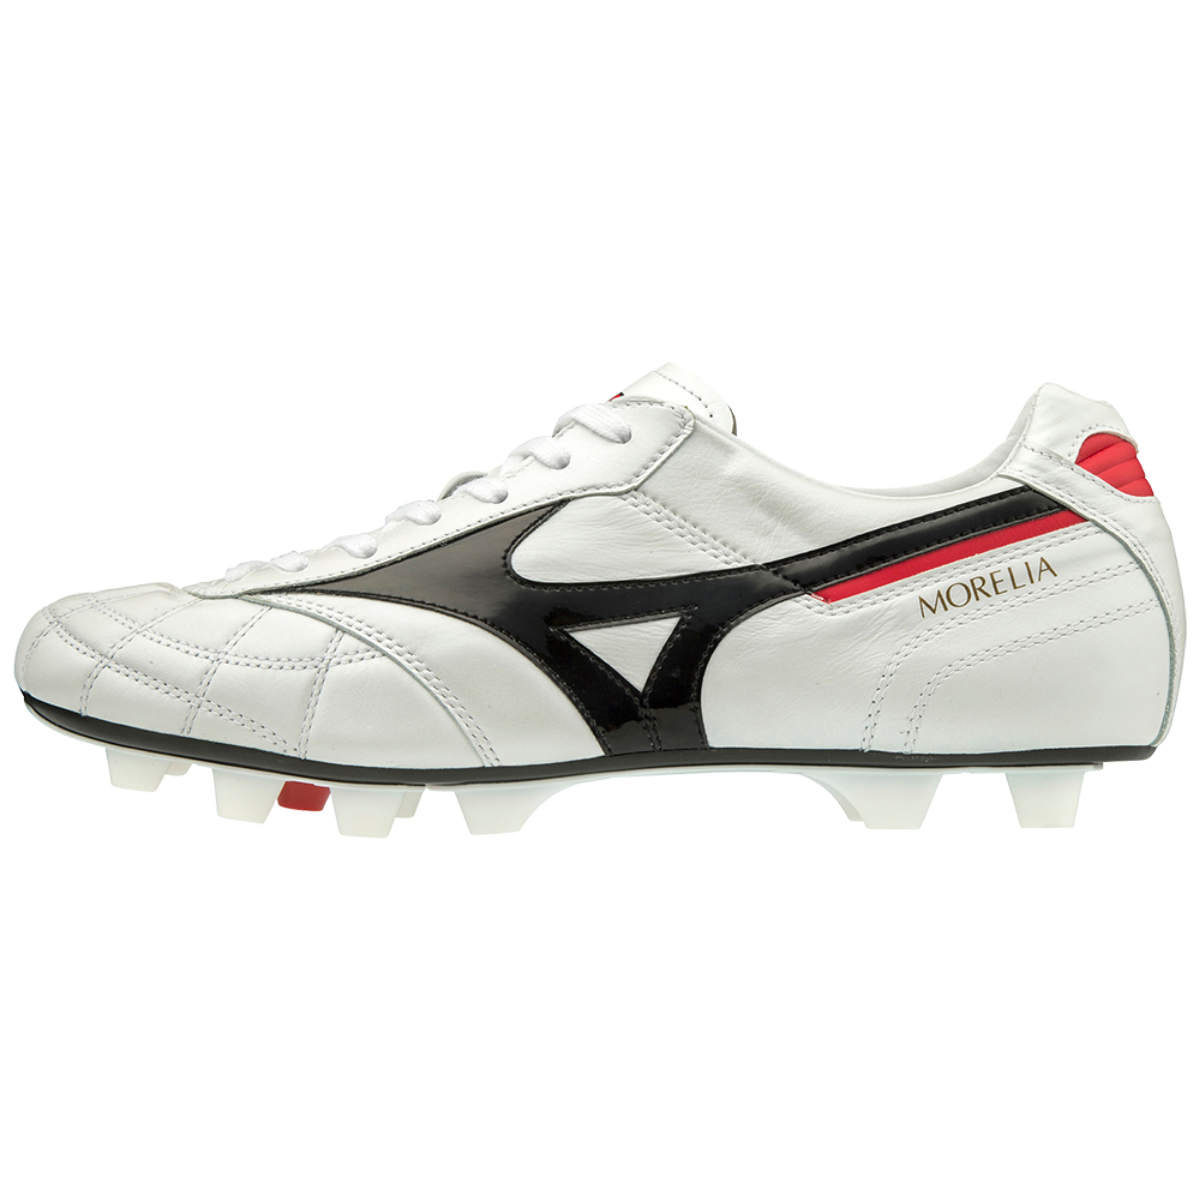 MORELIA II JAPAN (SHORT TONGUE/CROSS STITCH) White / Black / Chinese Red